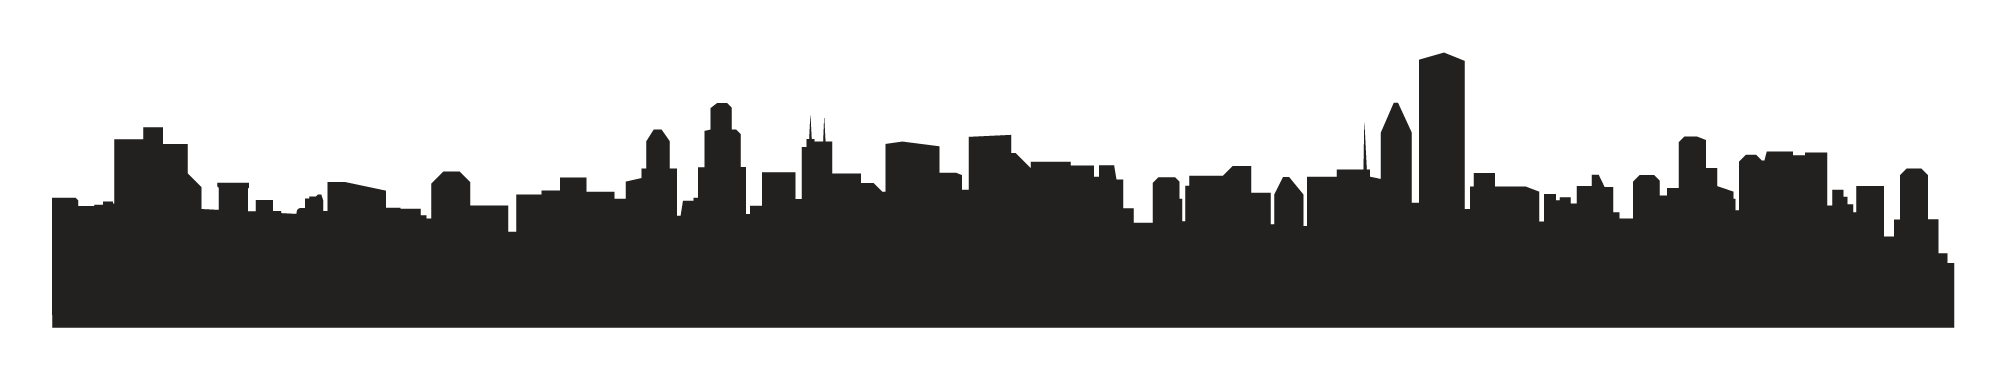 2000x377 Houston Skyline Outline Png Images In Collection